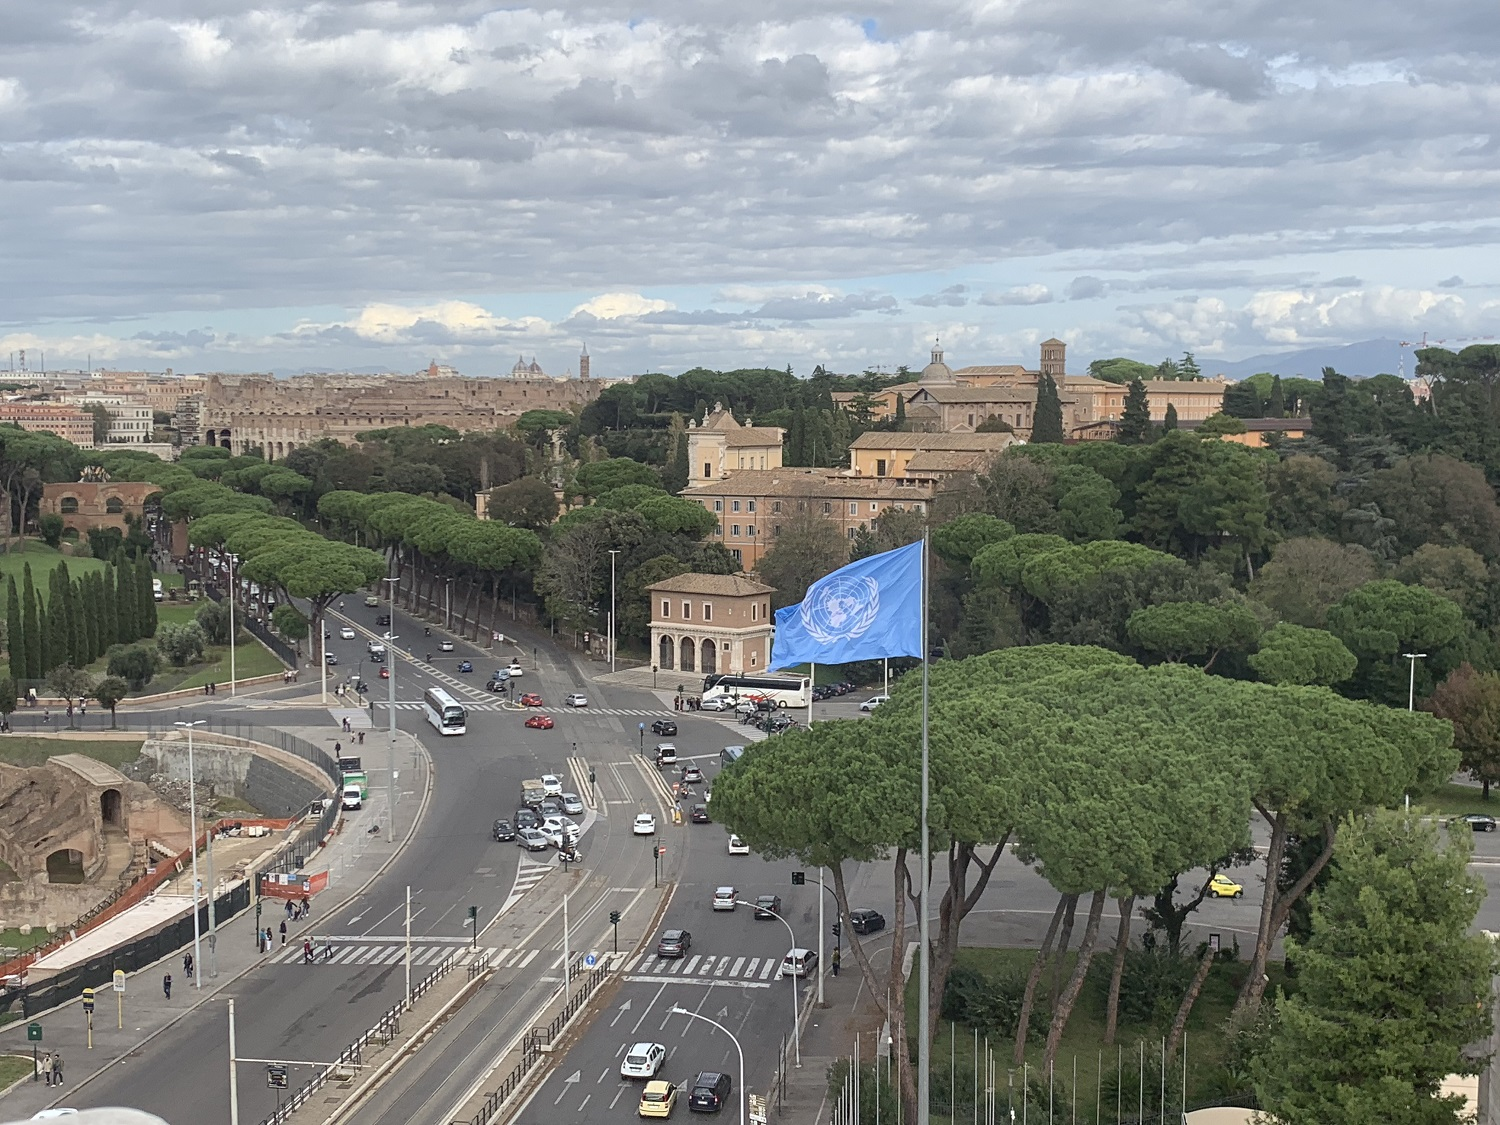 View from the FAO terrace with the UN flag waving in front of Rome's ancient city center.